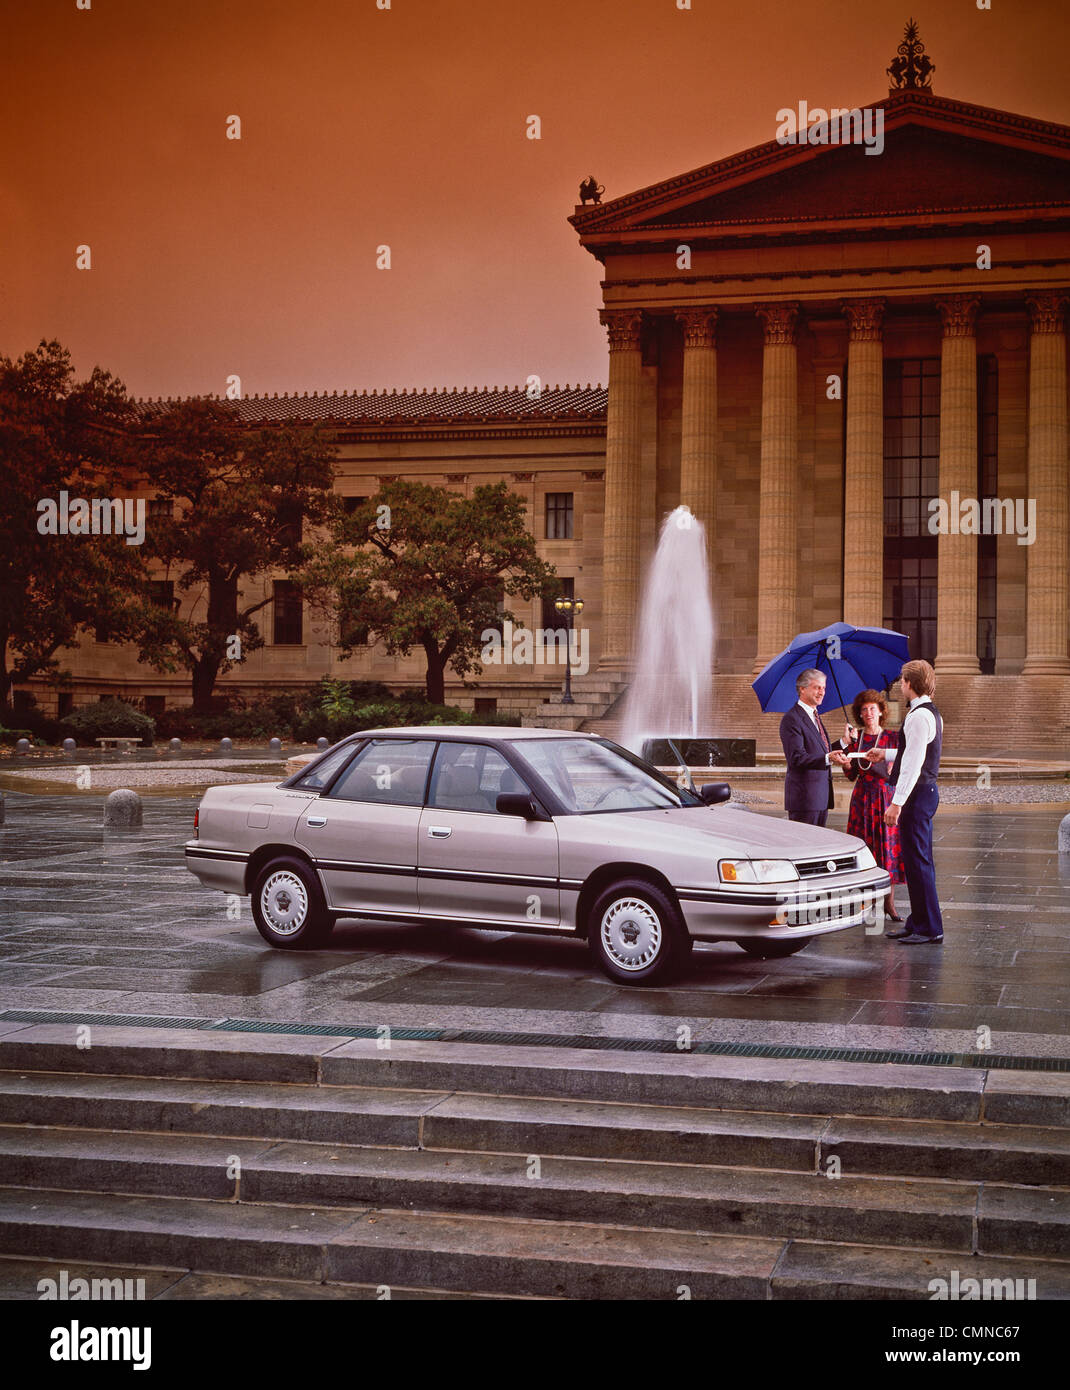 Subaru In Front Of Philadelphia Museum Of Art Stock Photo Royalty - Subaru philadelphia